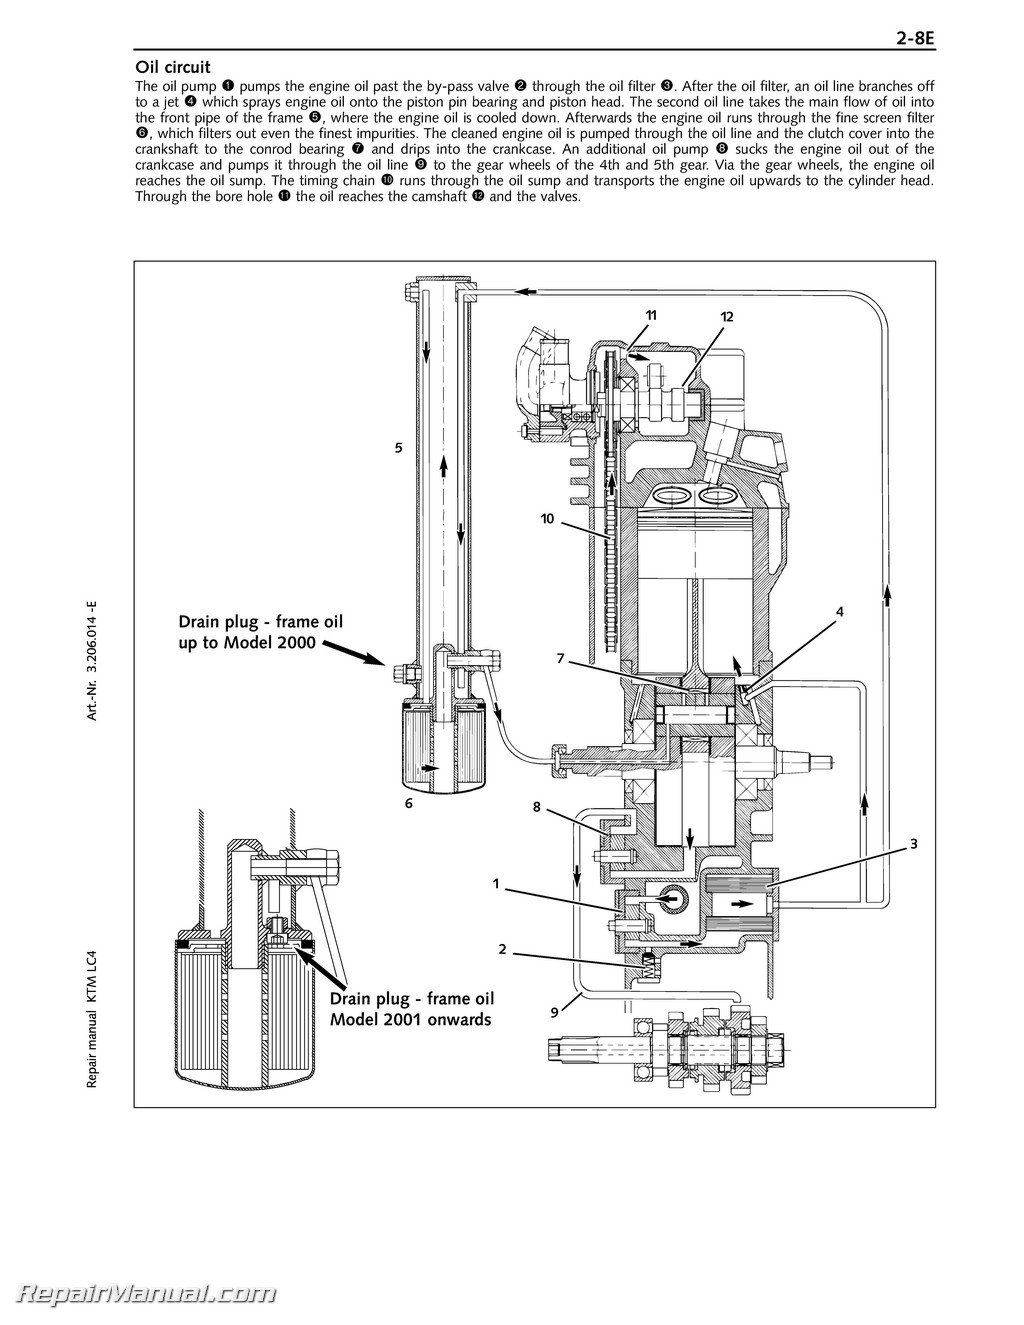 1998 2005 Ktm 400 660 Lc4 Paper Engine Repair Manual Wiring Harness Design Guide